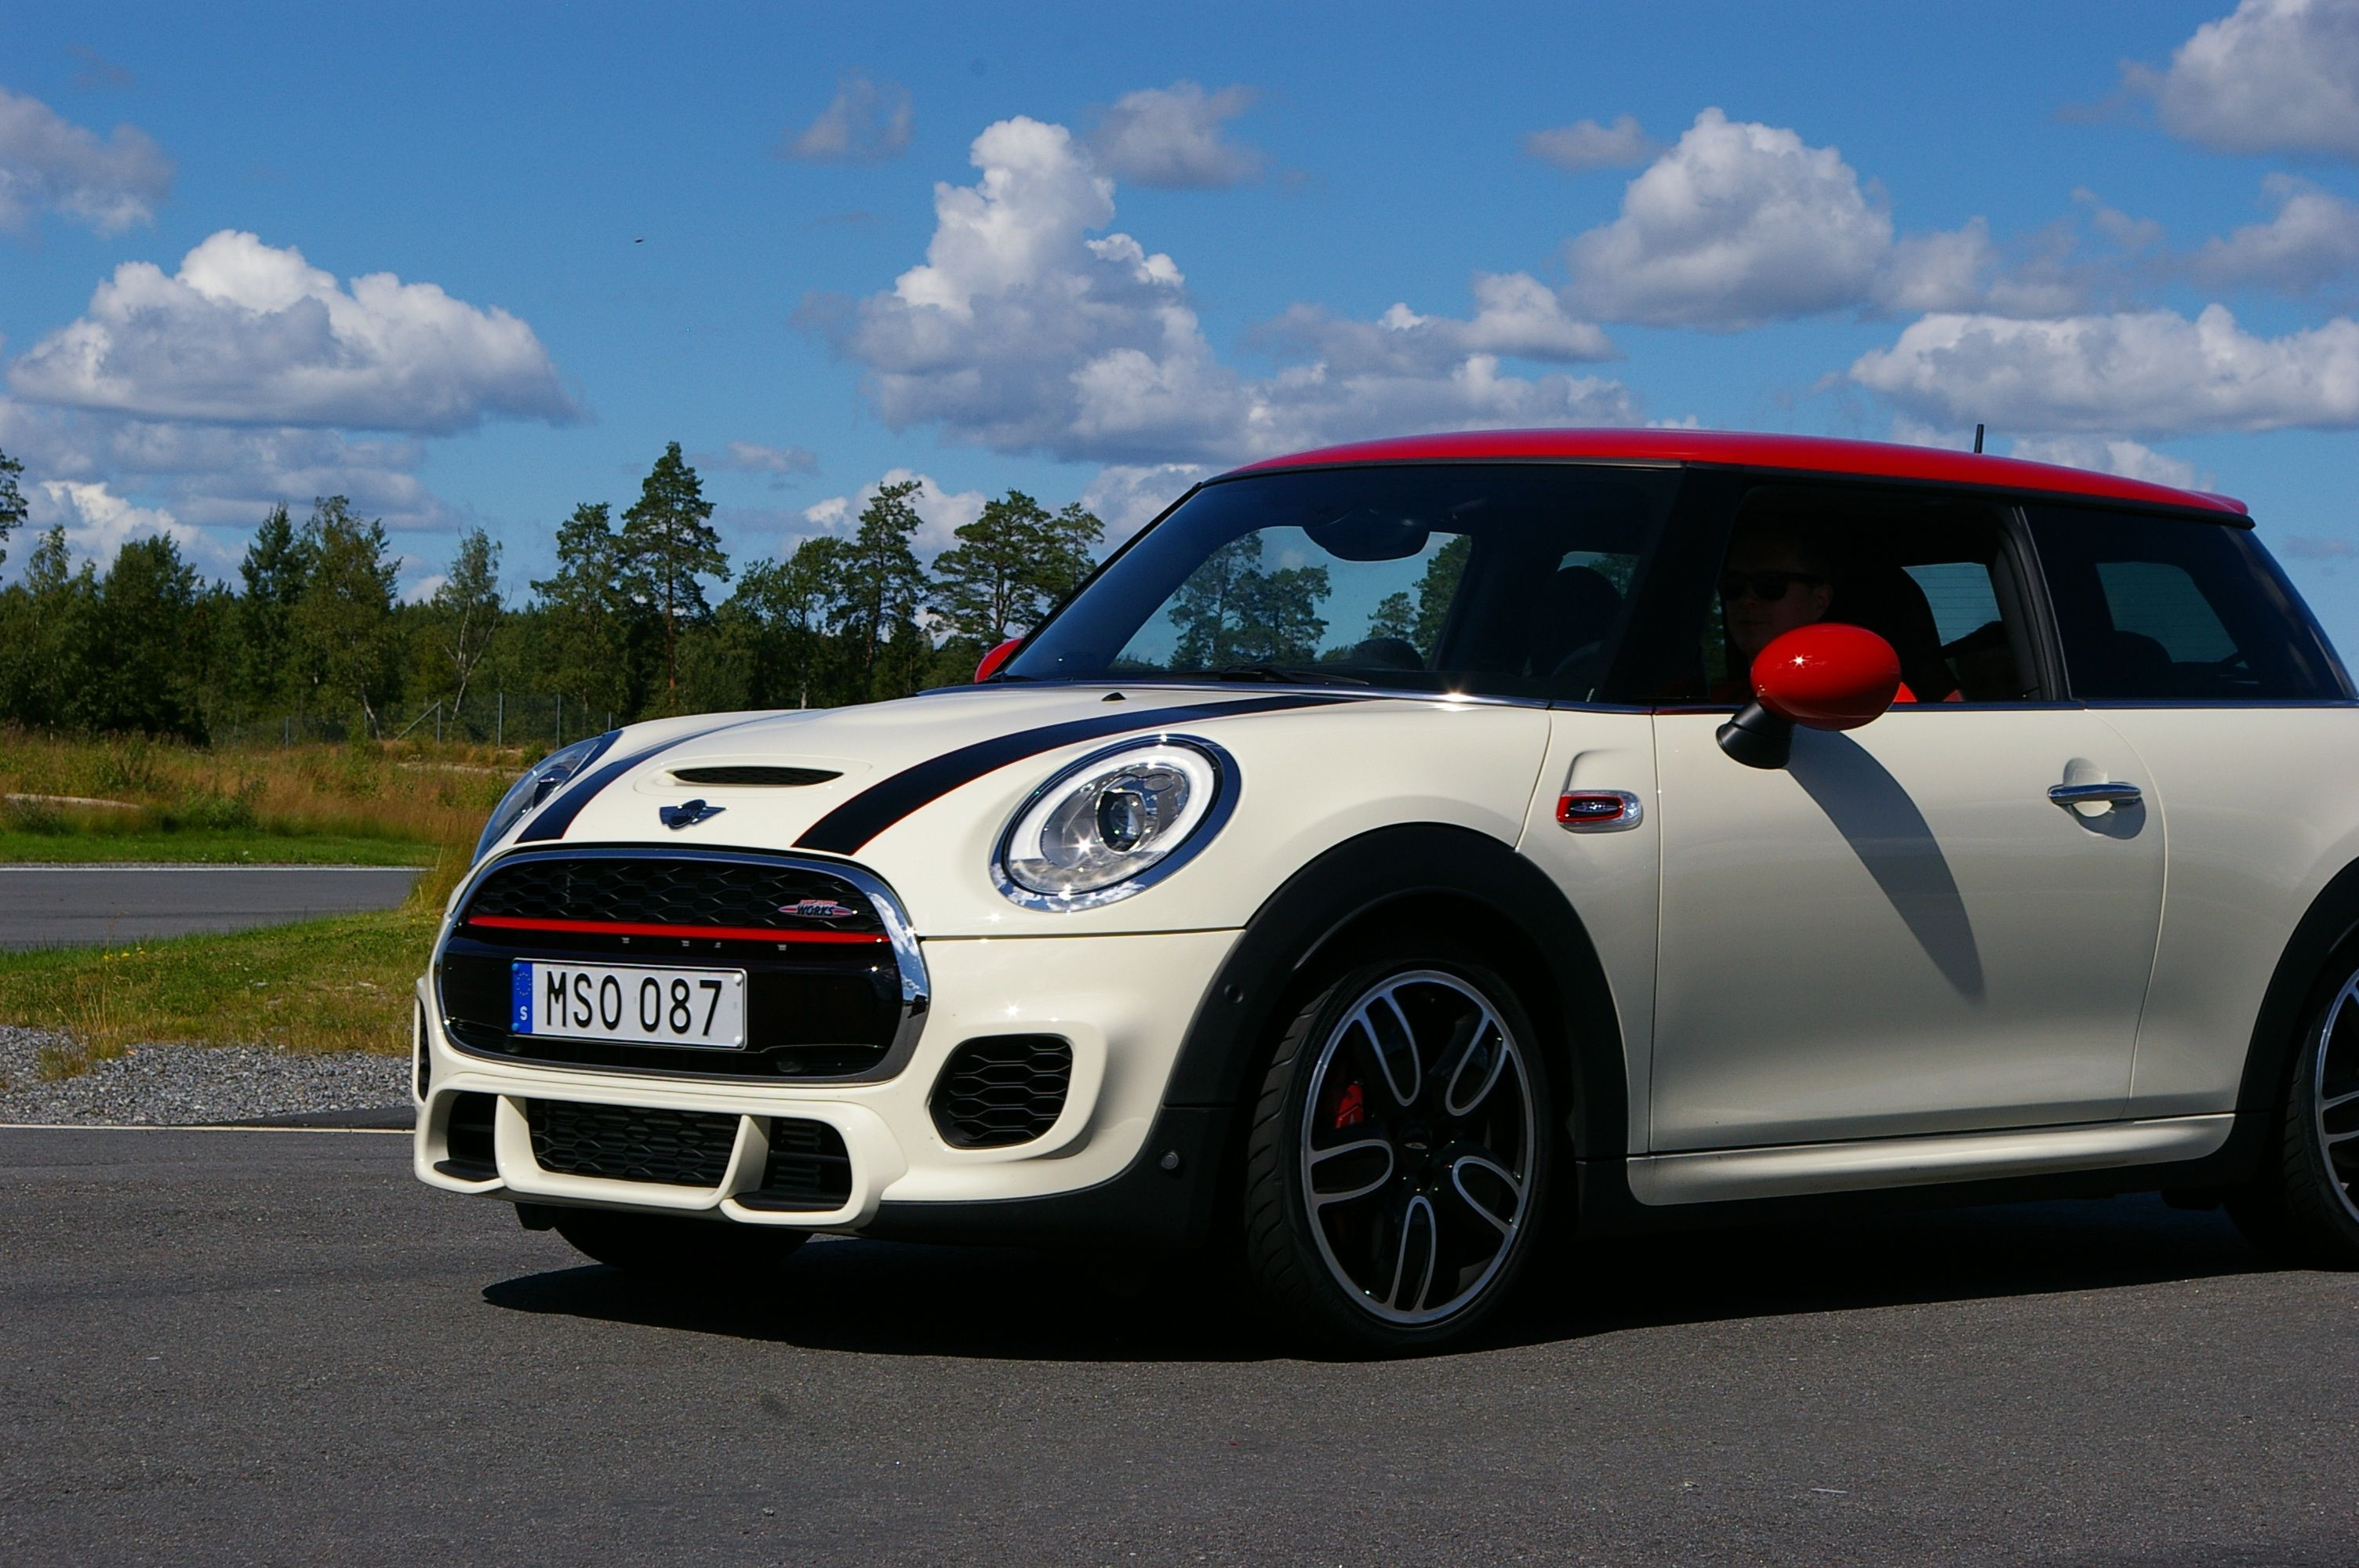 A Full List Of Mini 0 60 Amp Quarter Mile Times From 1981 To Today Including The Cooper Cooper S Jcw Clubman Paceman Countr Mini Cars Mini Mini Cooper S